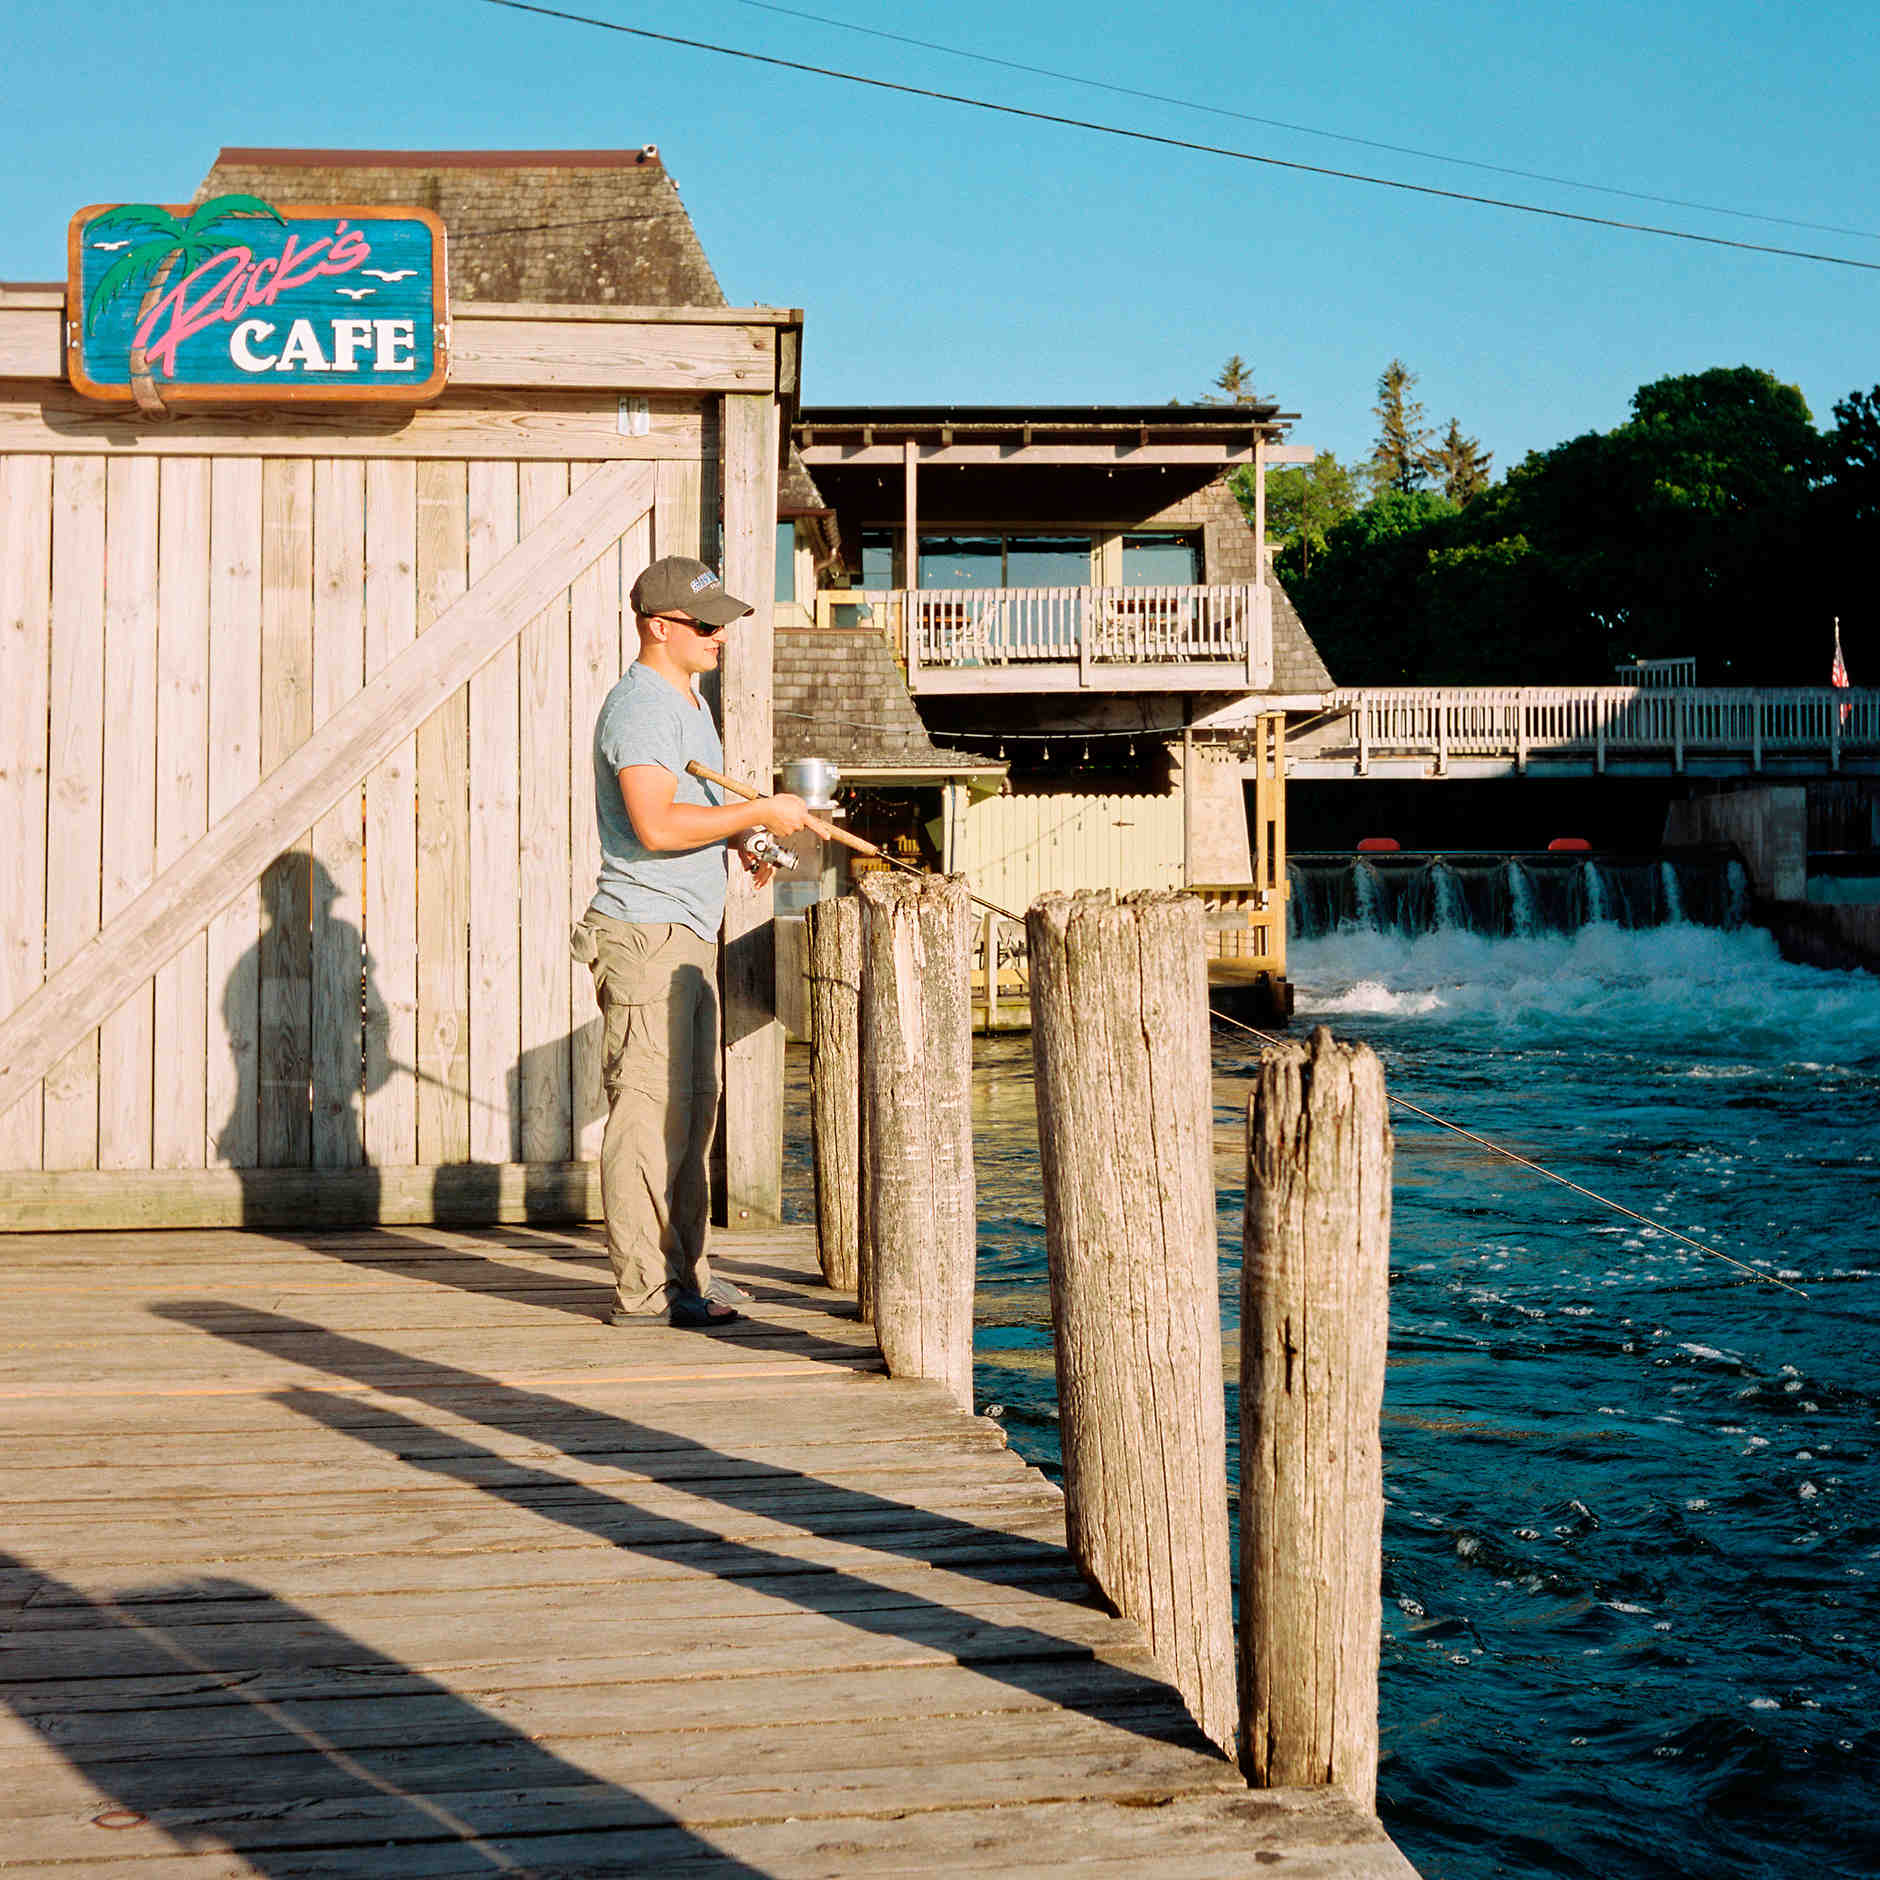 A man reels in his bait in Fishtown in Leland, Michigan on Monday, June 10, 2019. (Photo by James Brosher)